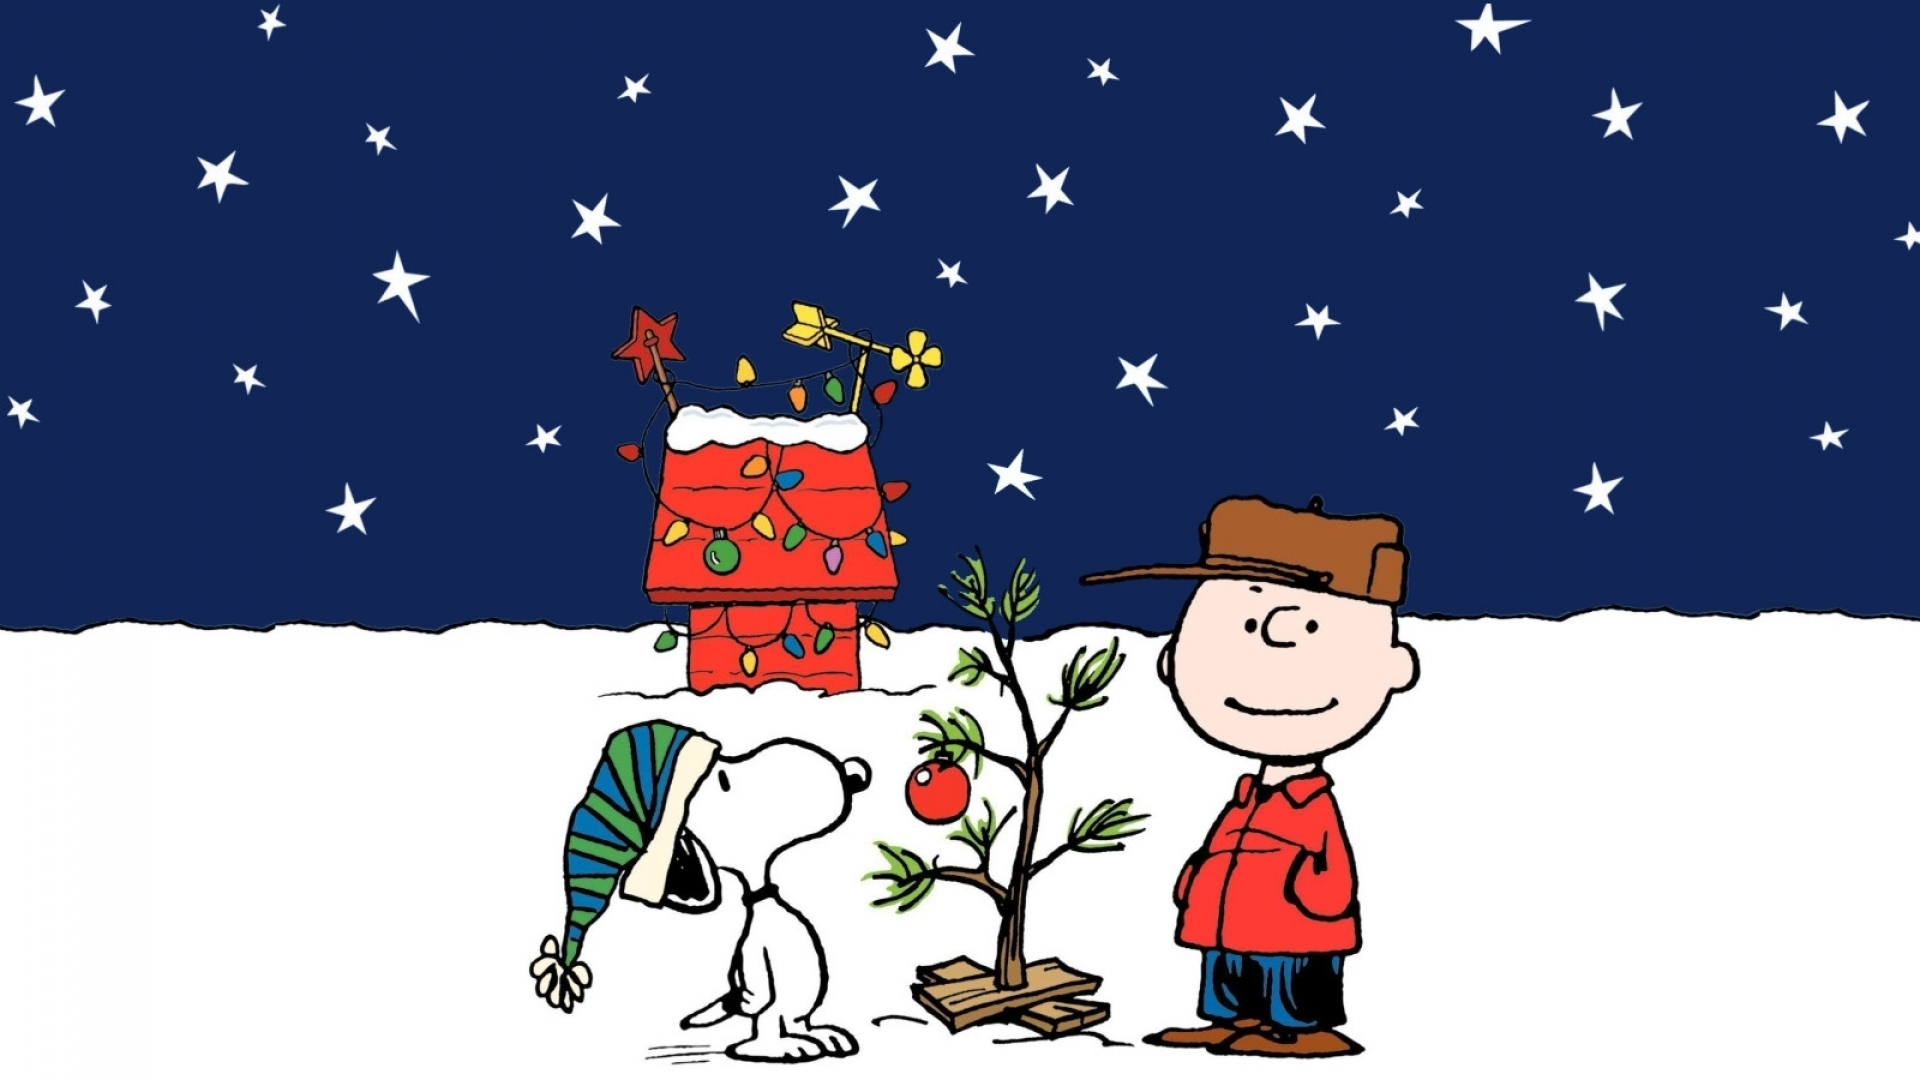 CHARLIE BROWN peanuts comics snoopy christmas gg wallpaper background 1920x1080